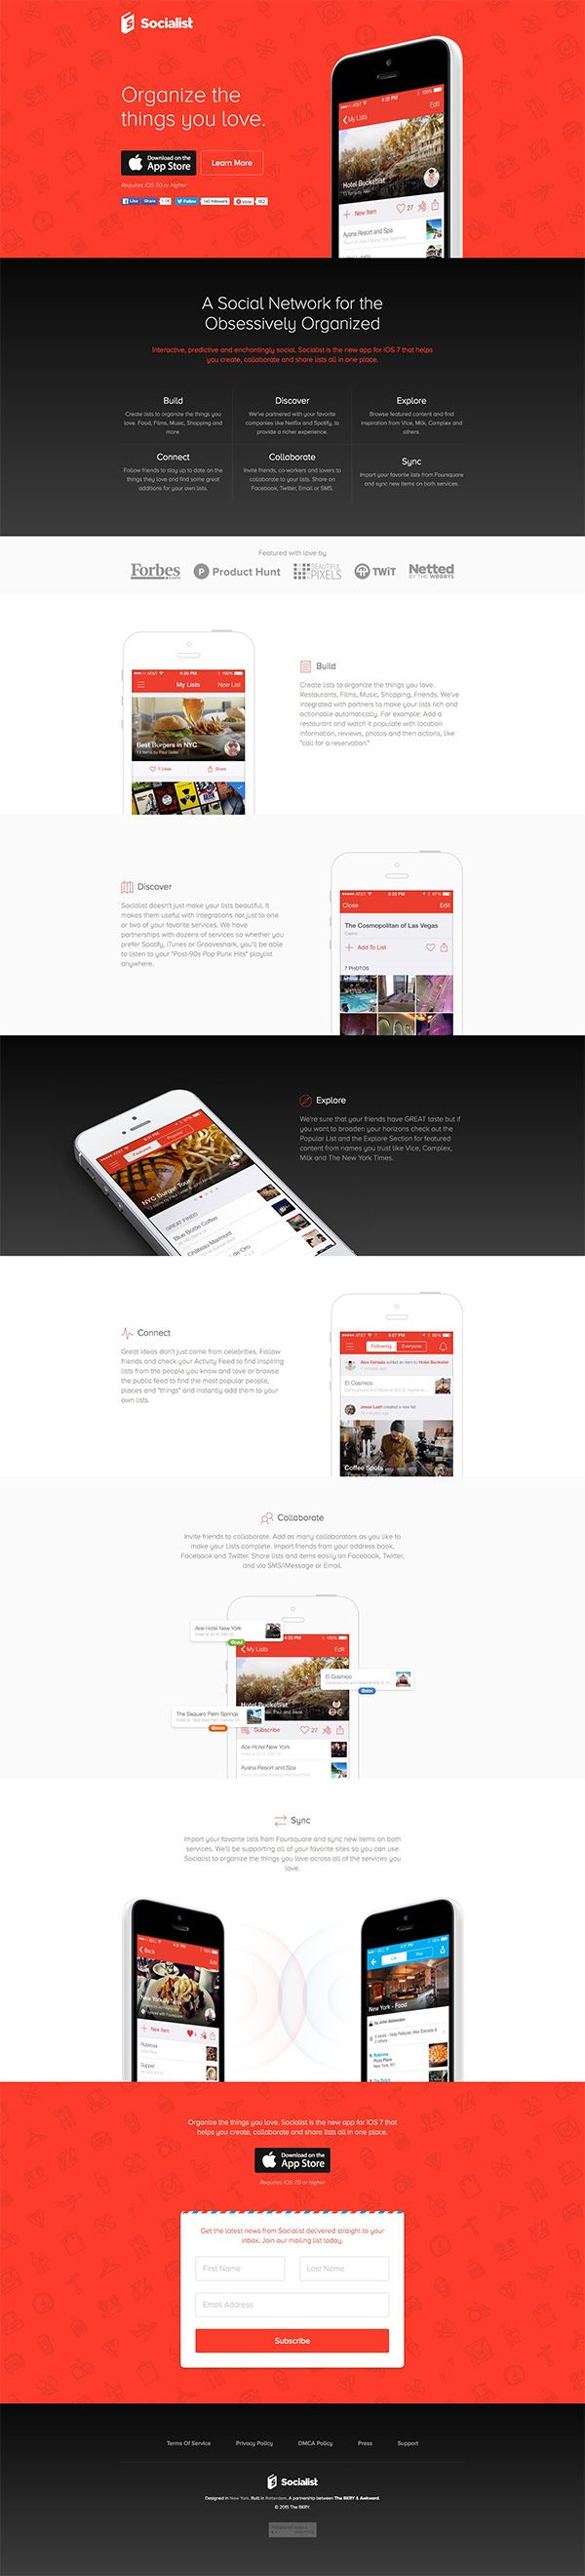 Organize The Things You Love | Landing Page Design Inspiration